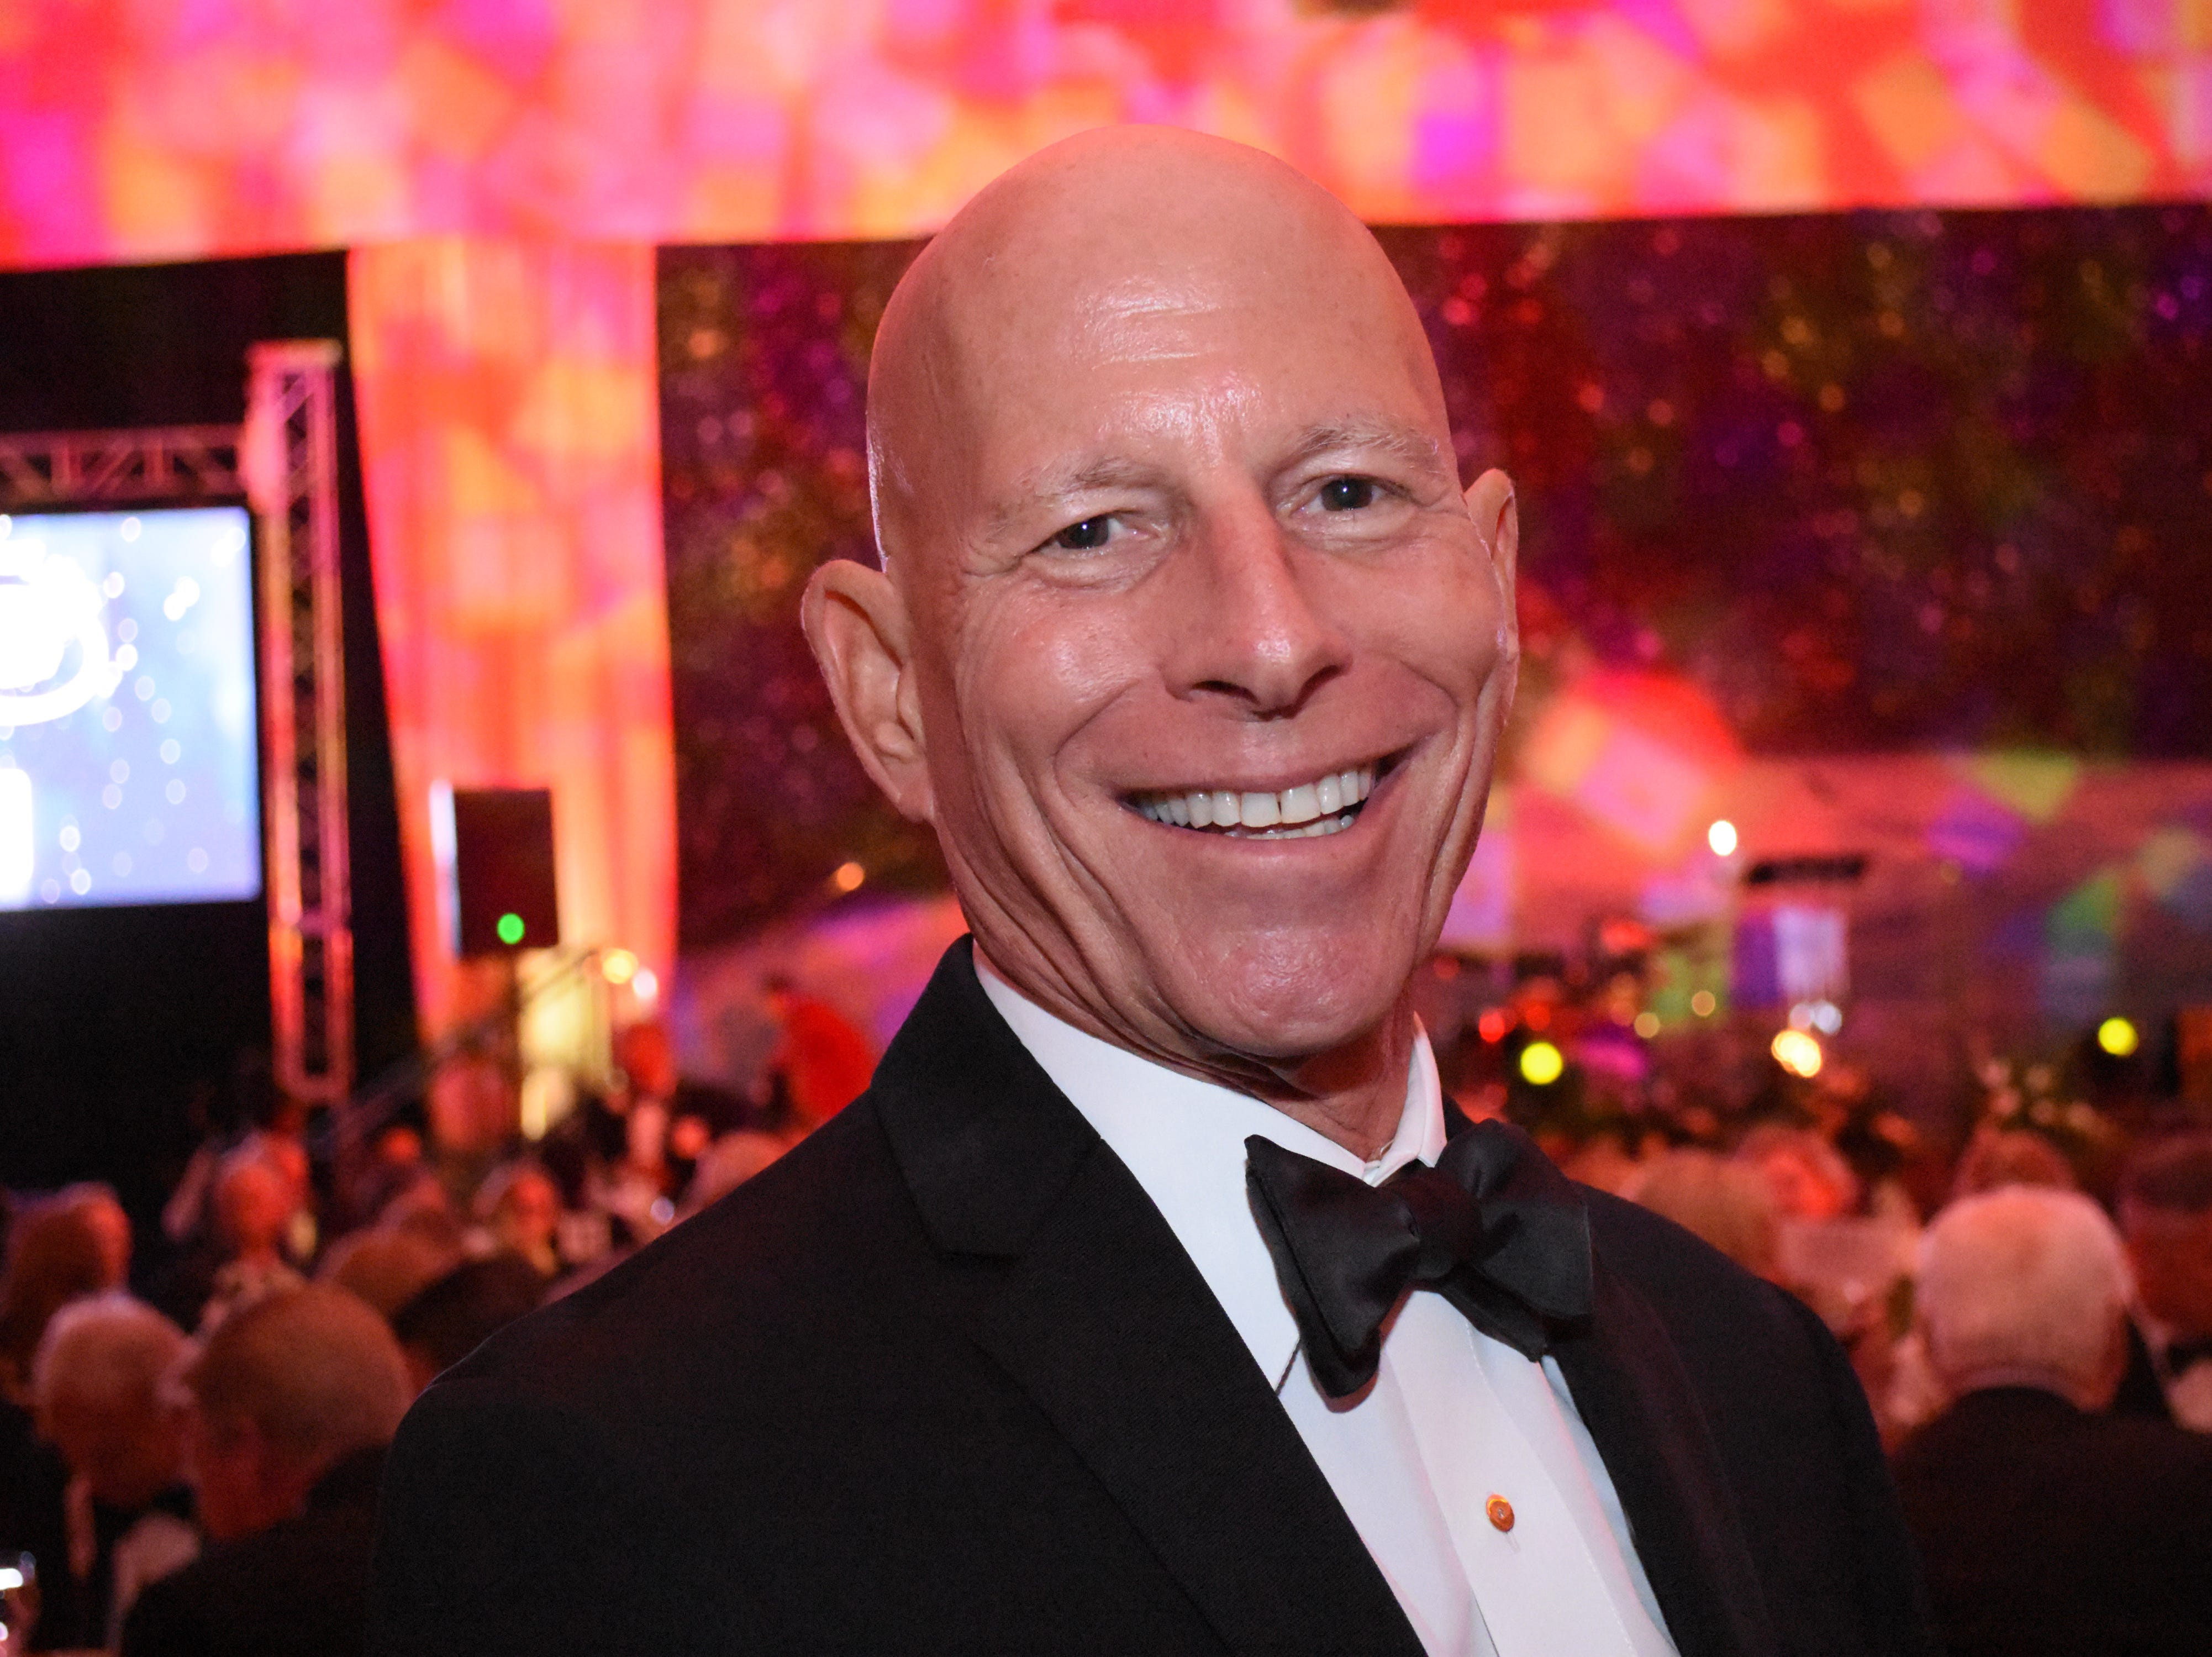 Duane Defreese poses for a photo at Florida Tech's 60th Anniversary Homecoming Gala Oct. 13, 2018, at the Clemente Center.